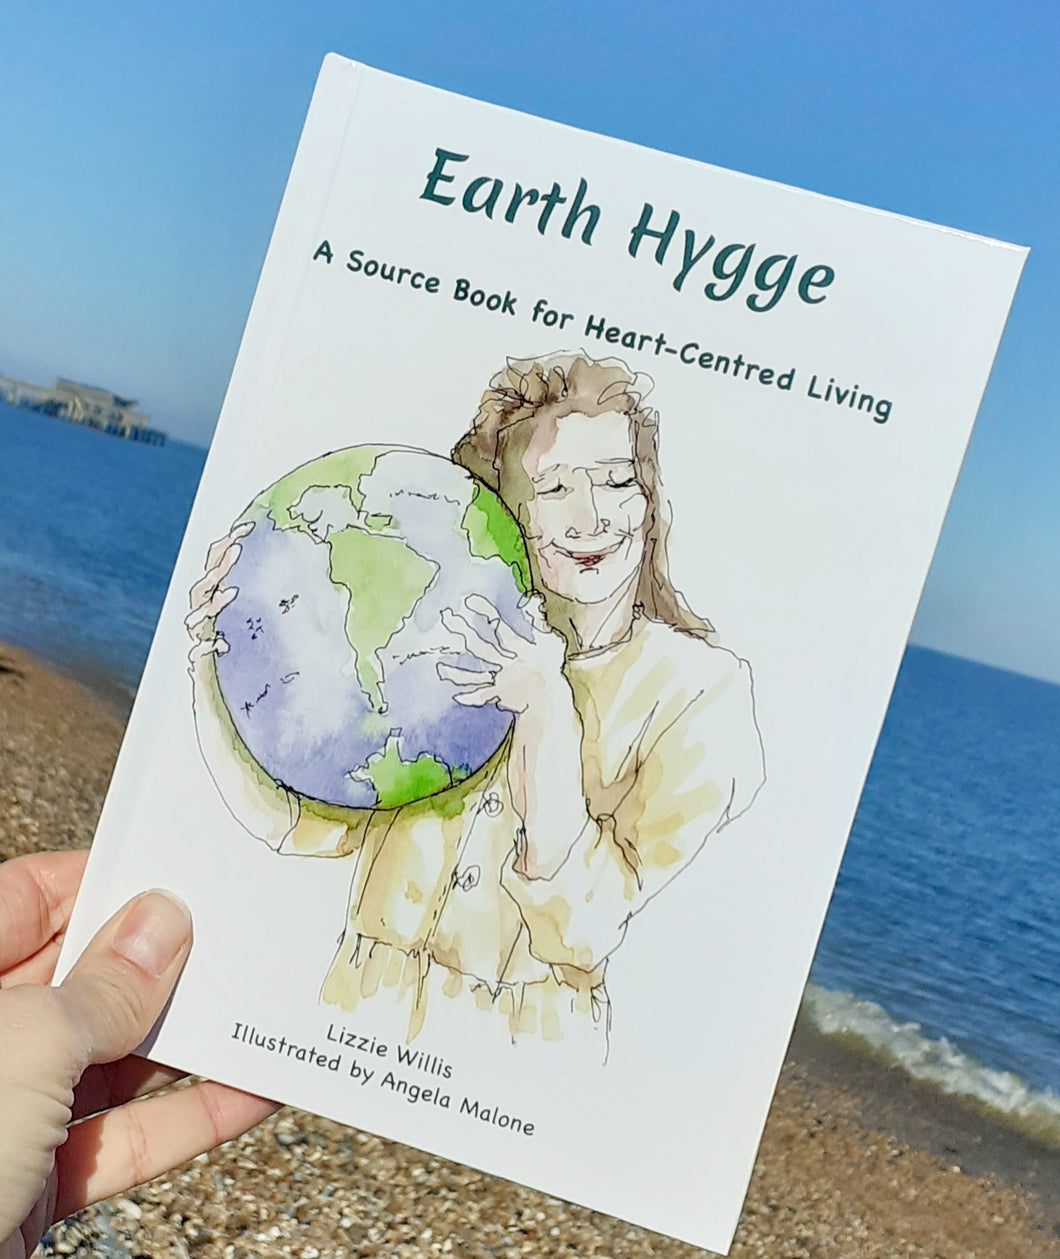 Earth Hygge: A Source Book for Heart-Centred Living